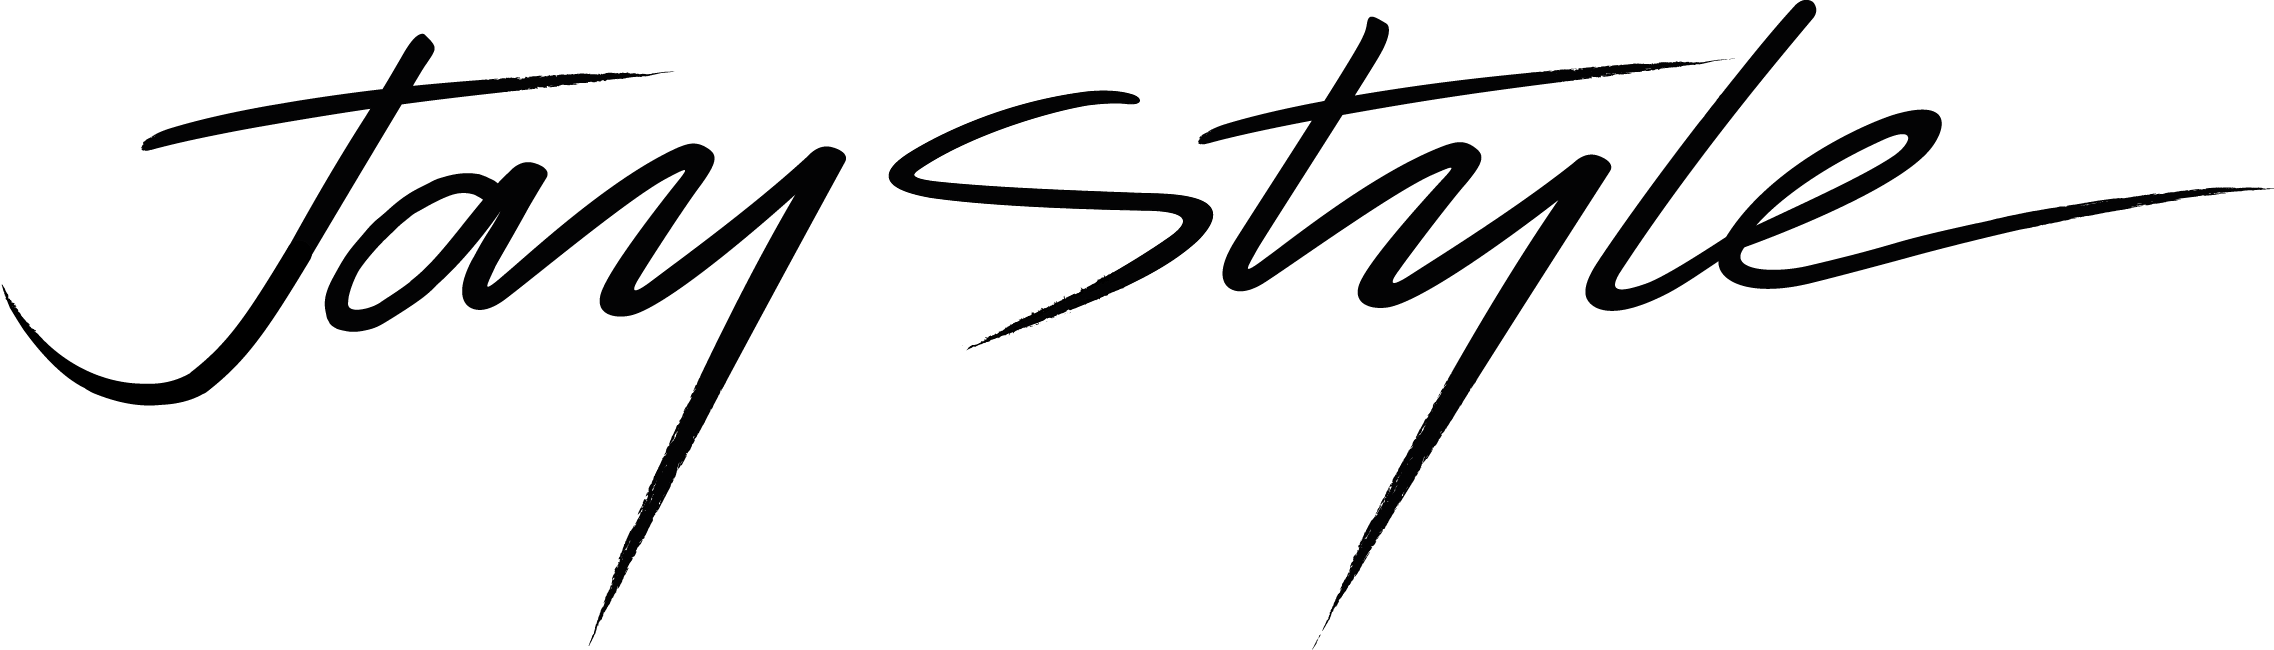 File:Logo Jay Style Black.png - PNG Style